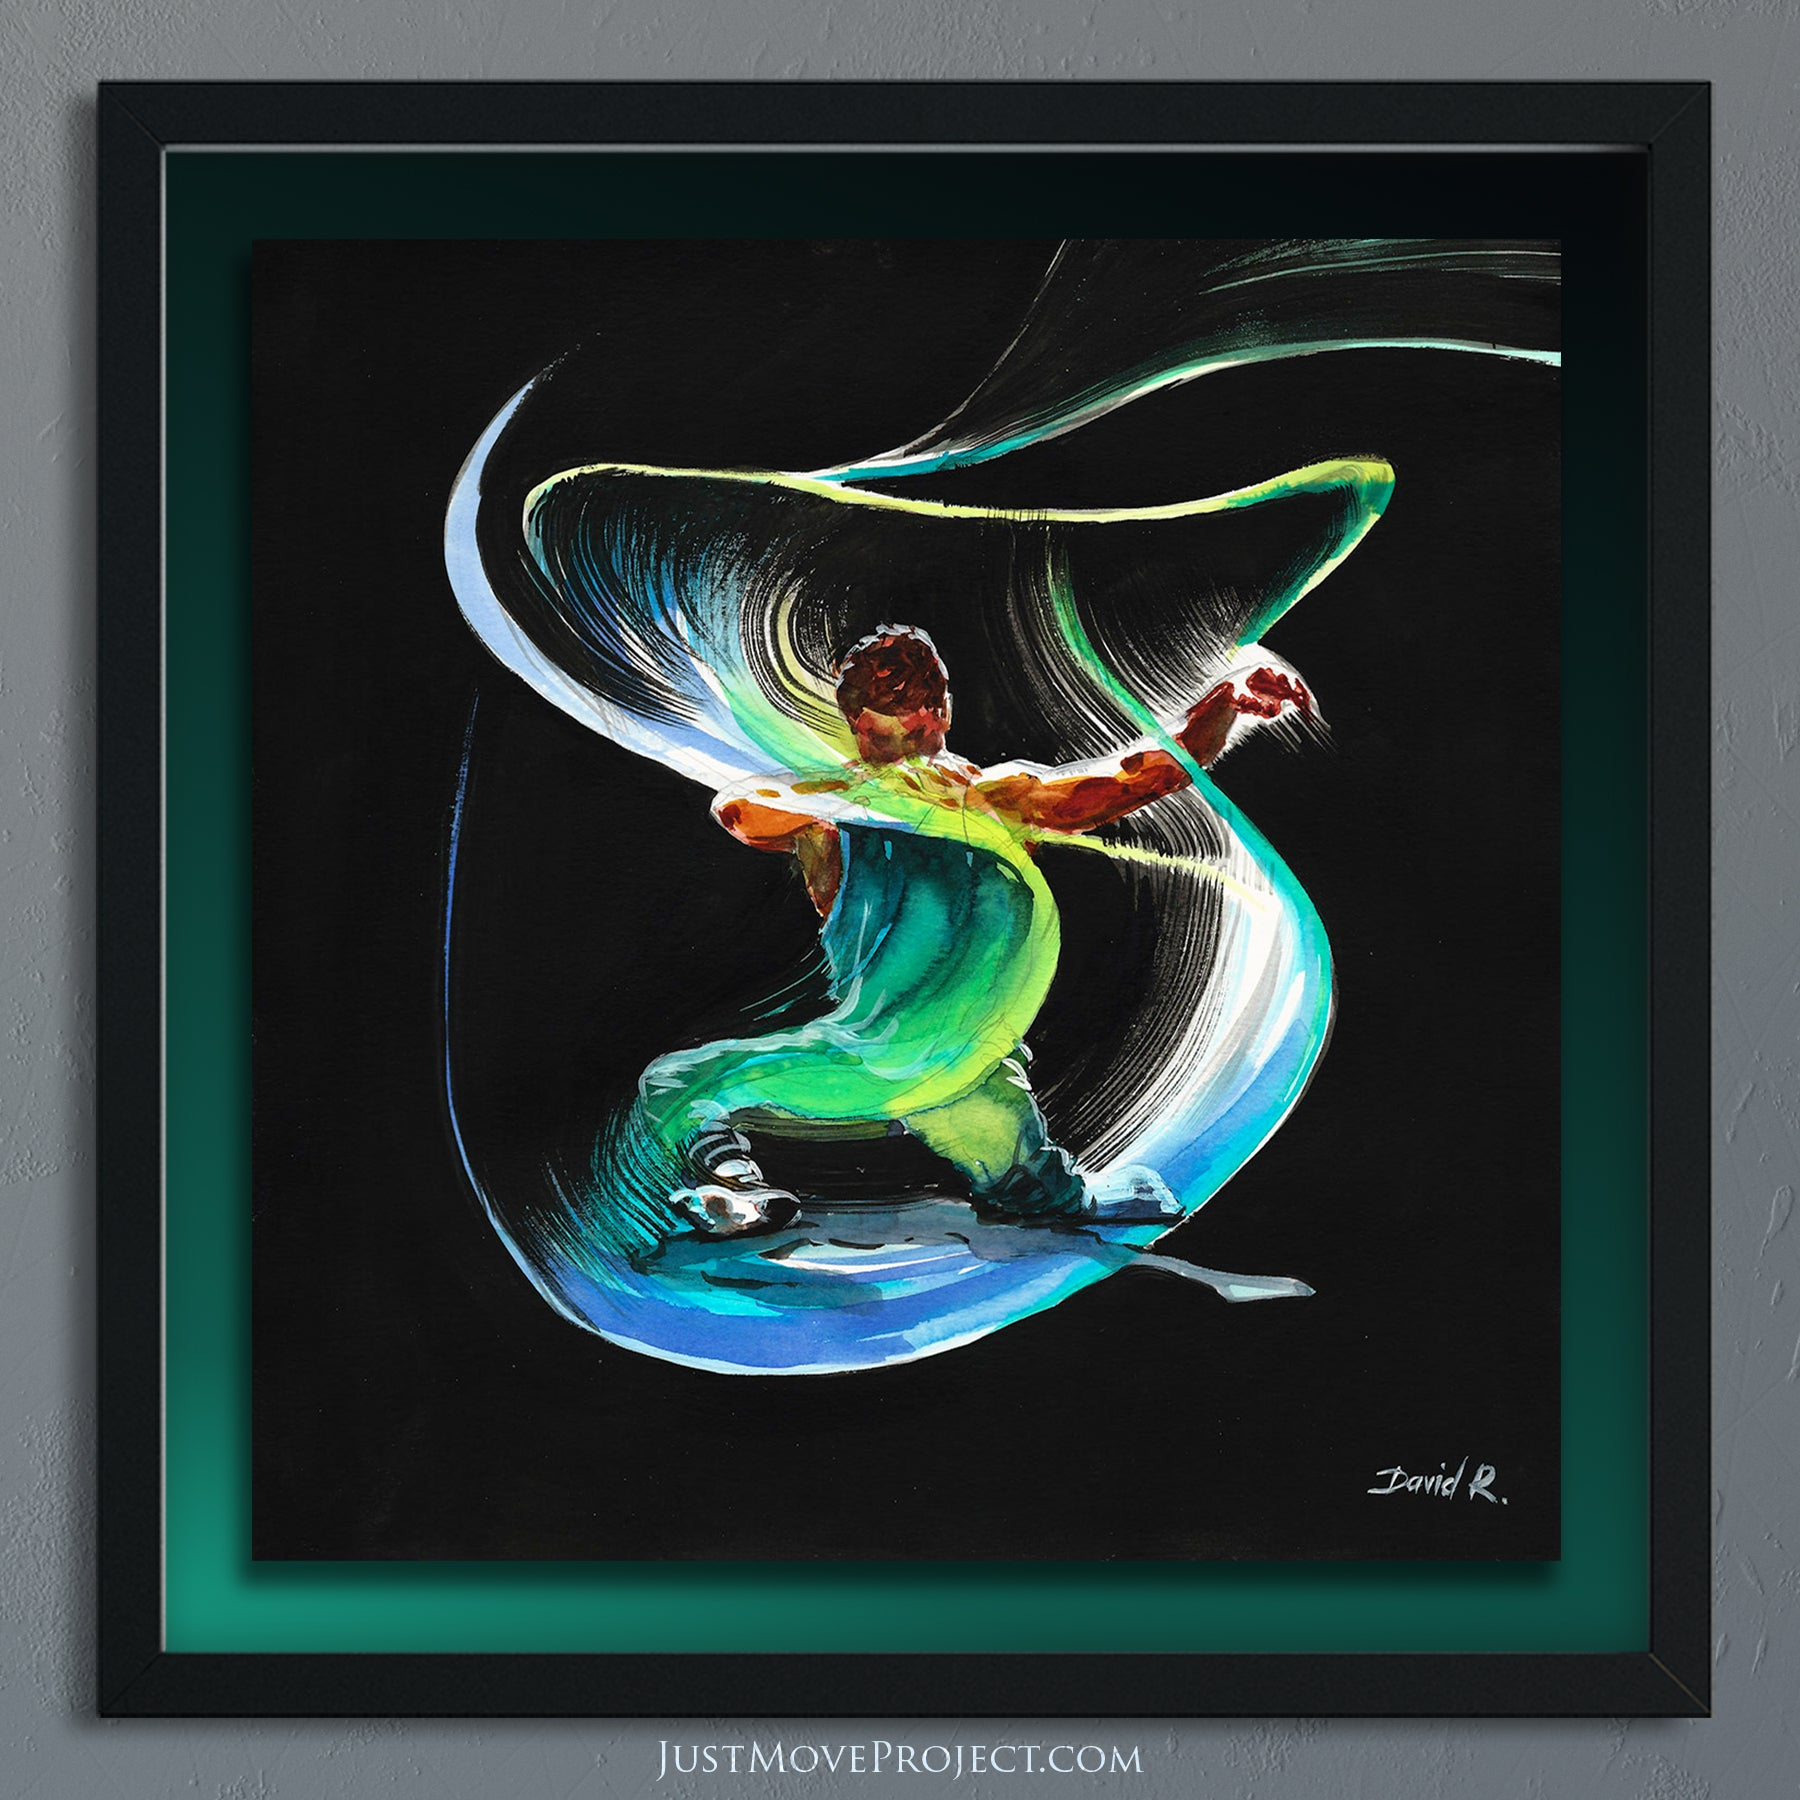 david roman art just move project 2 watercolour watercolor painting vibrant wall art home decor inspired by movement and athletes turquoise teal mauve jon yuen